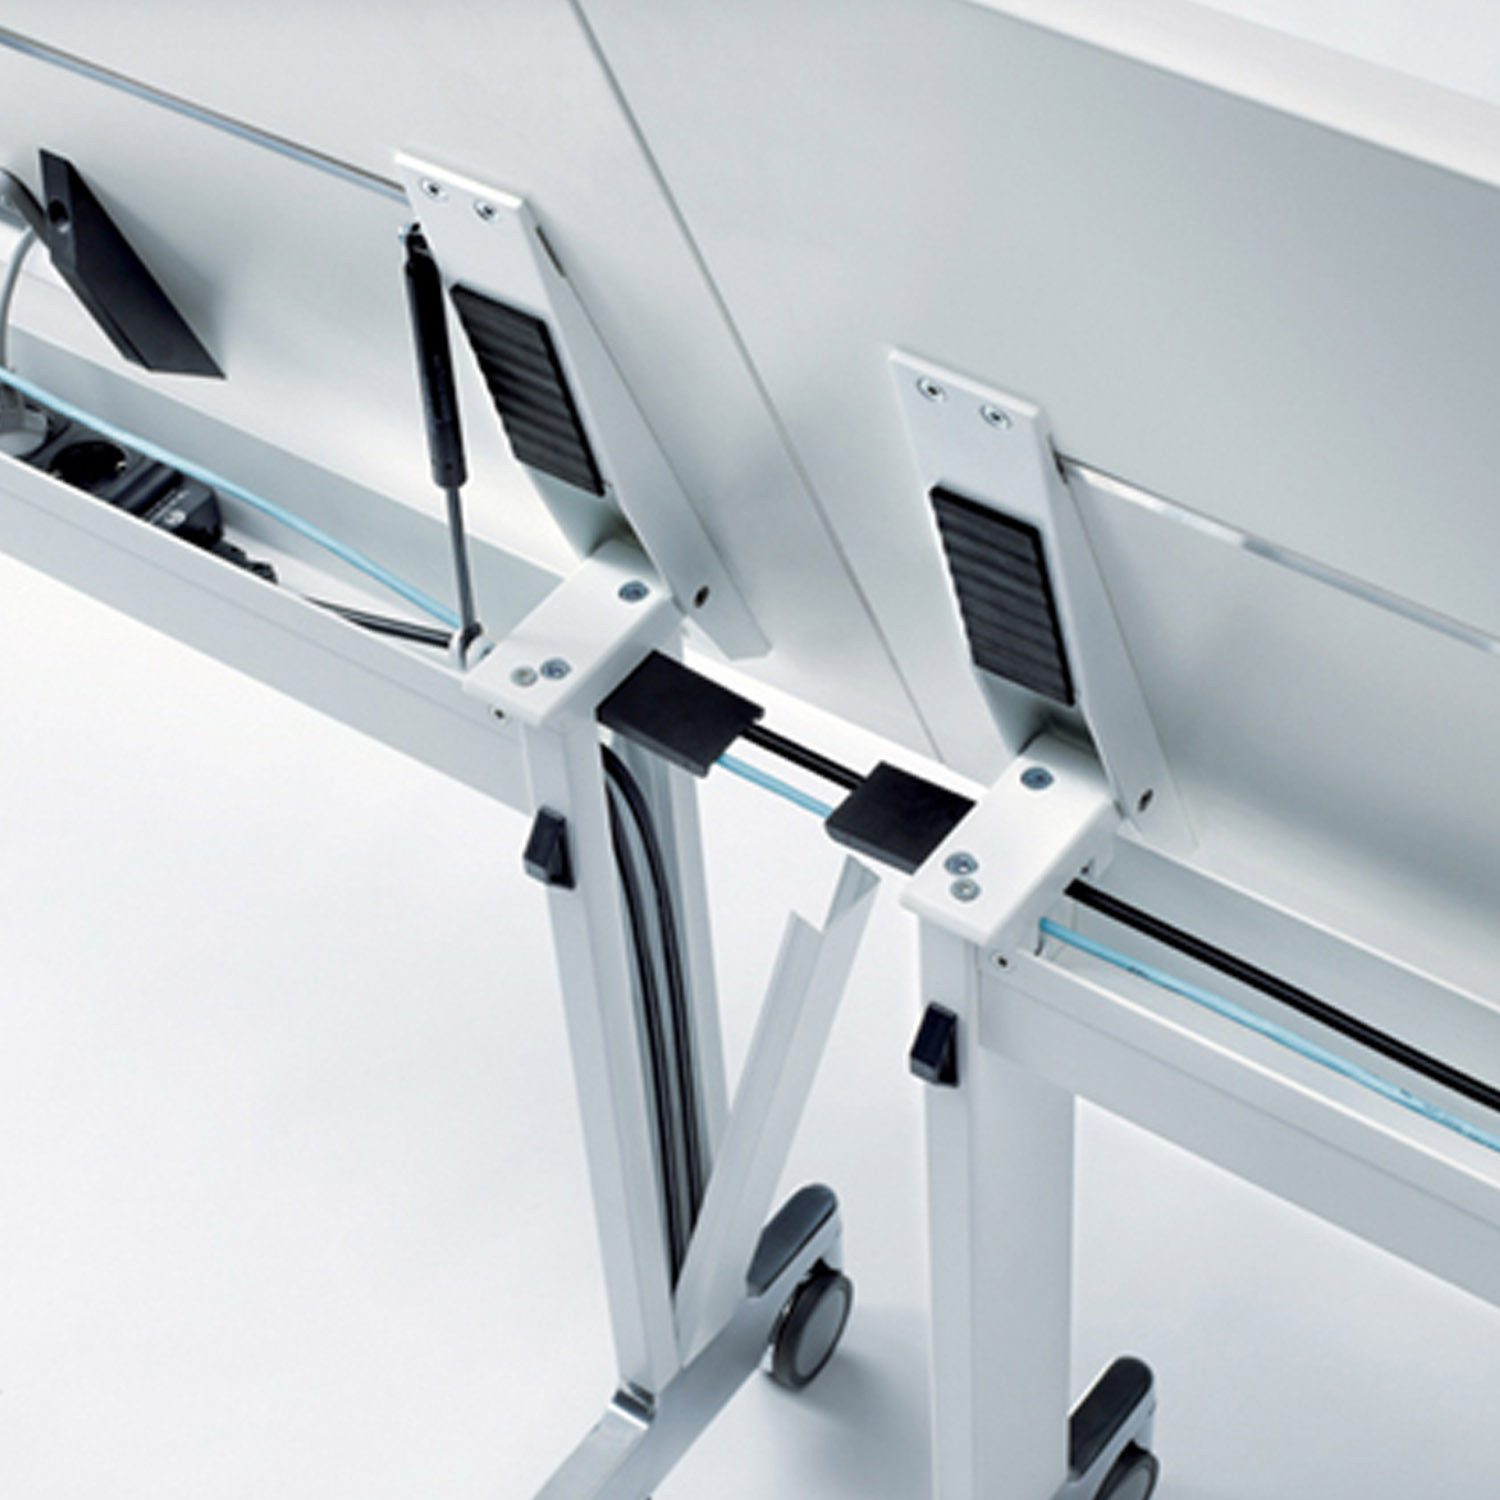 N_Table Cable Management from Wiesner Hager